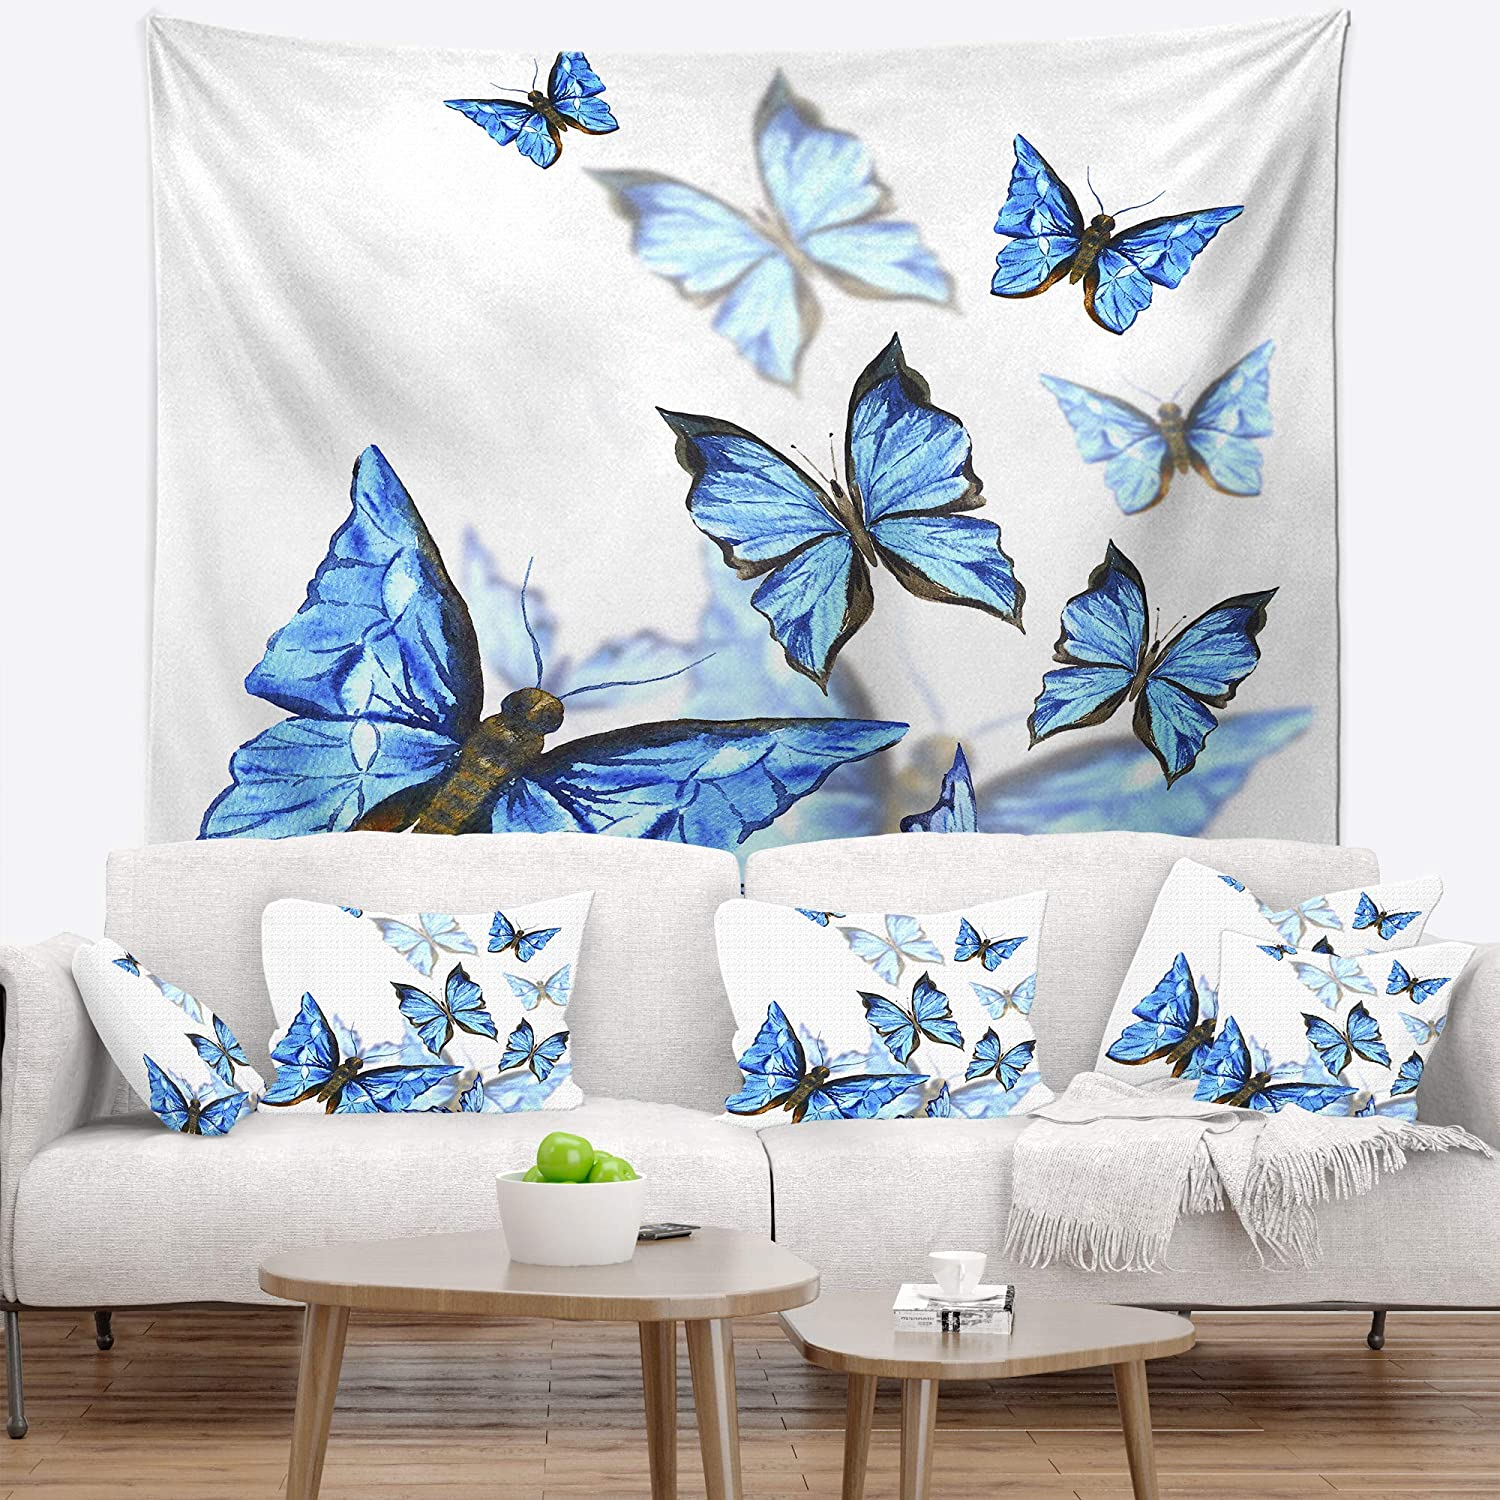 Created on Lightweight Polyester Fabric Designart TAP13309-50-60 Watercolor Butterflies on White Floral Blanket D/écor Art for Home and Office Wall Tapestry Large 50 x 60